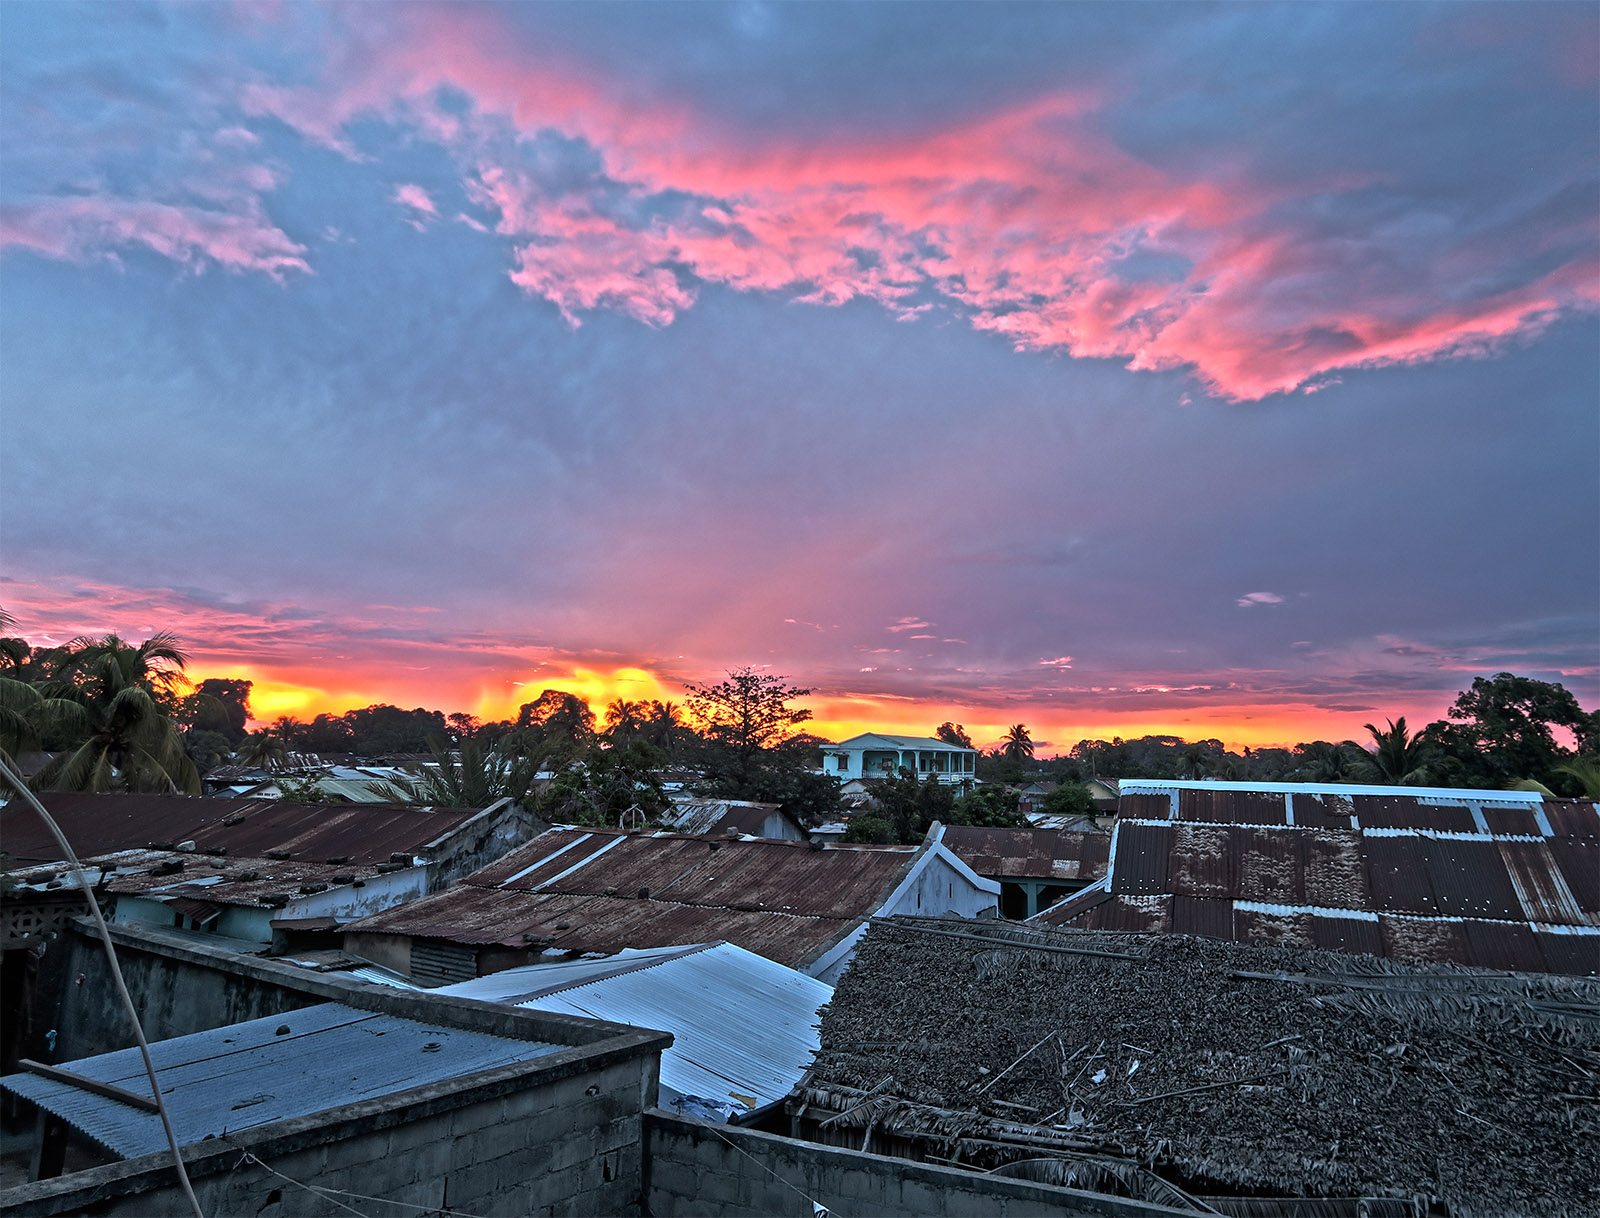 Sunset over the rooftops in Ambilobe